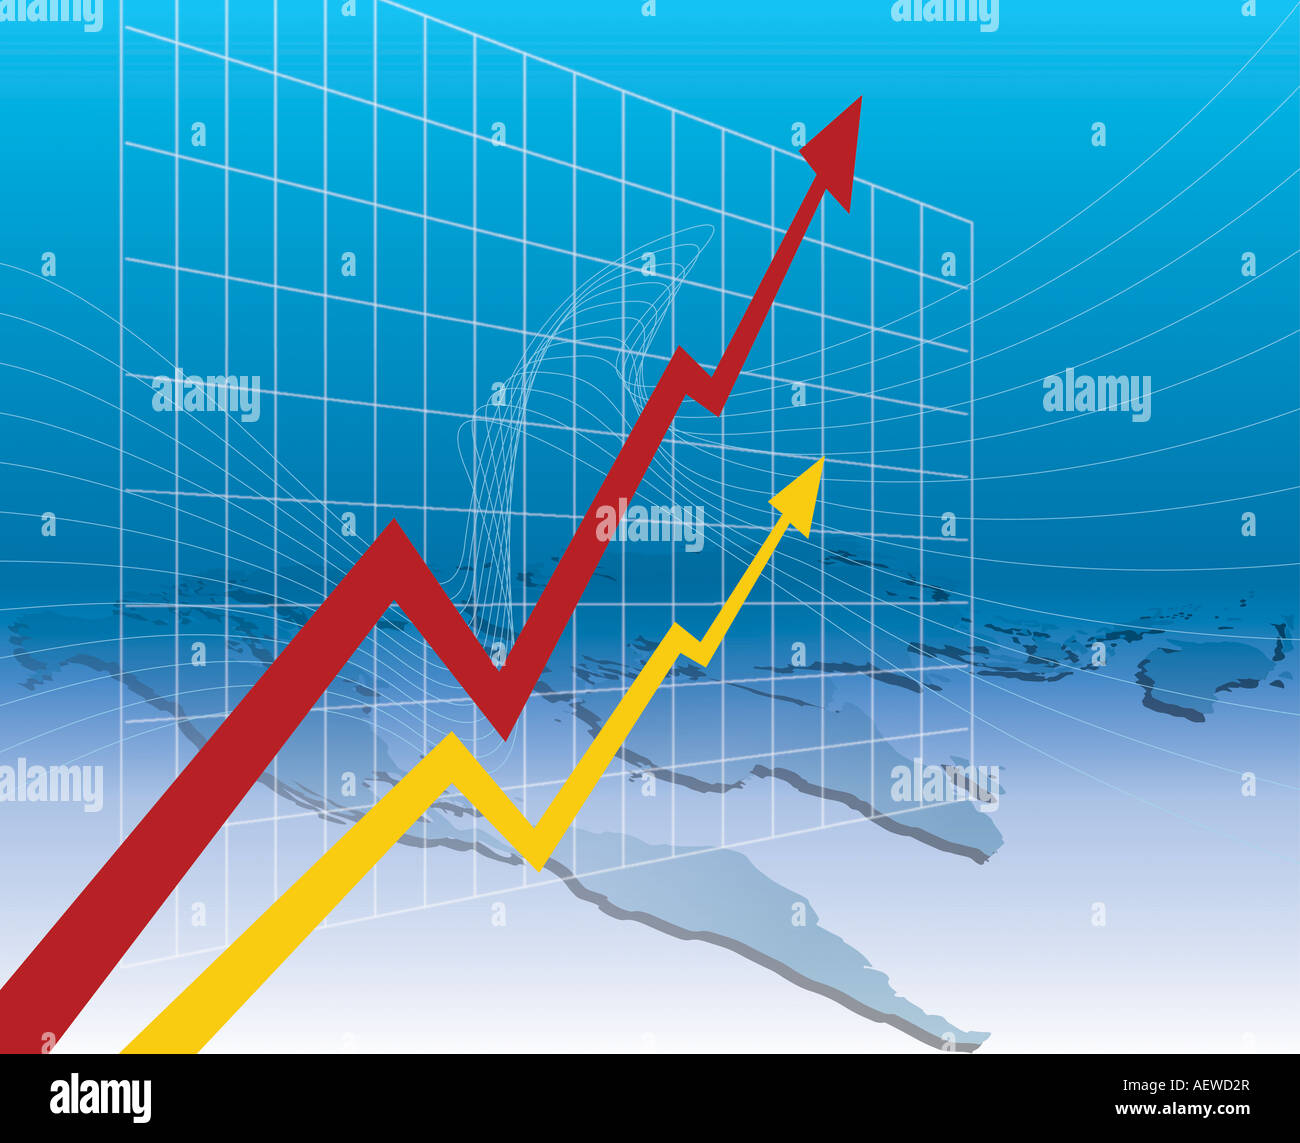 The world business benefit of graph Stock Photo